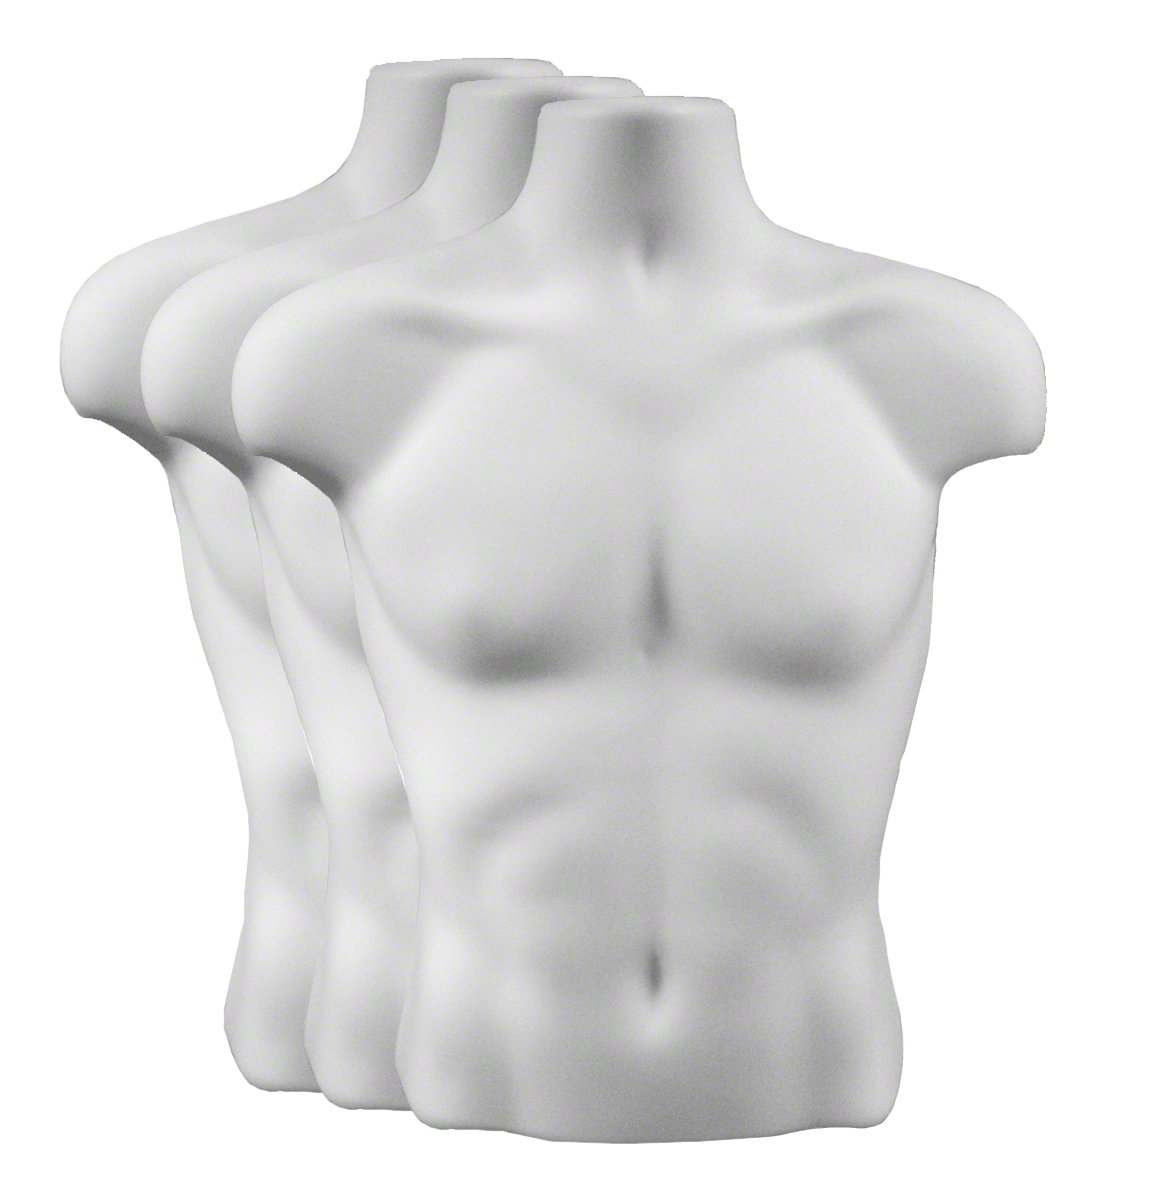 Torso Form - Male, Case of 3, White Plastic Mannequins